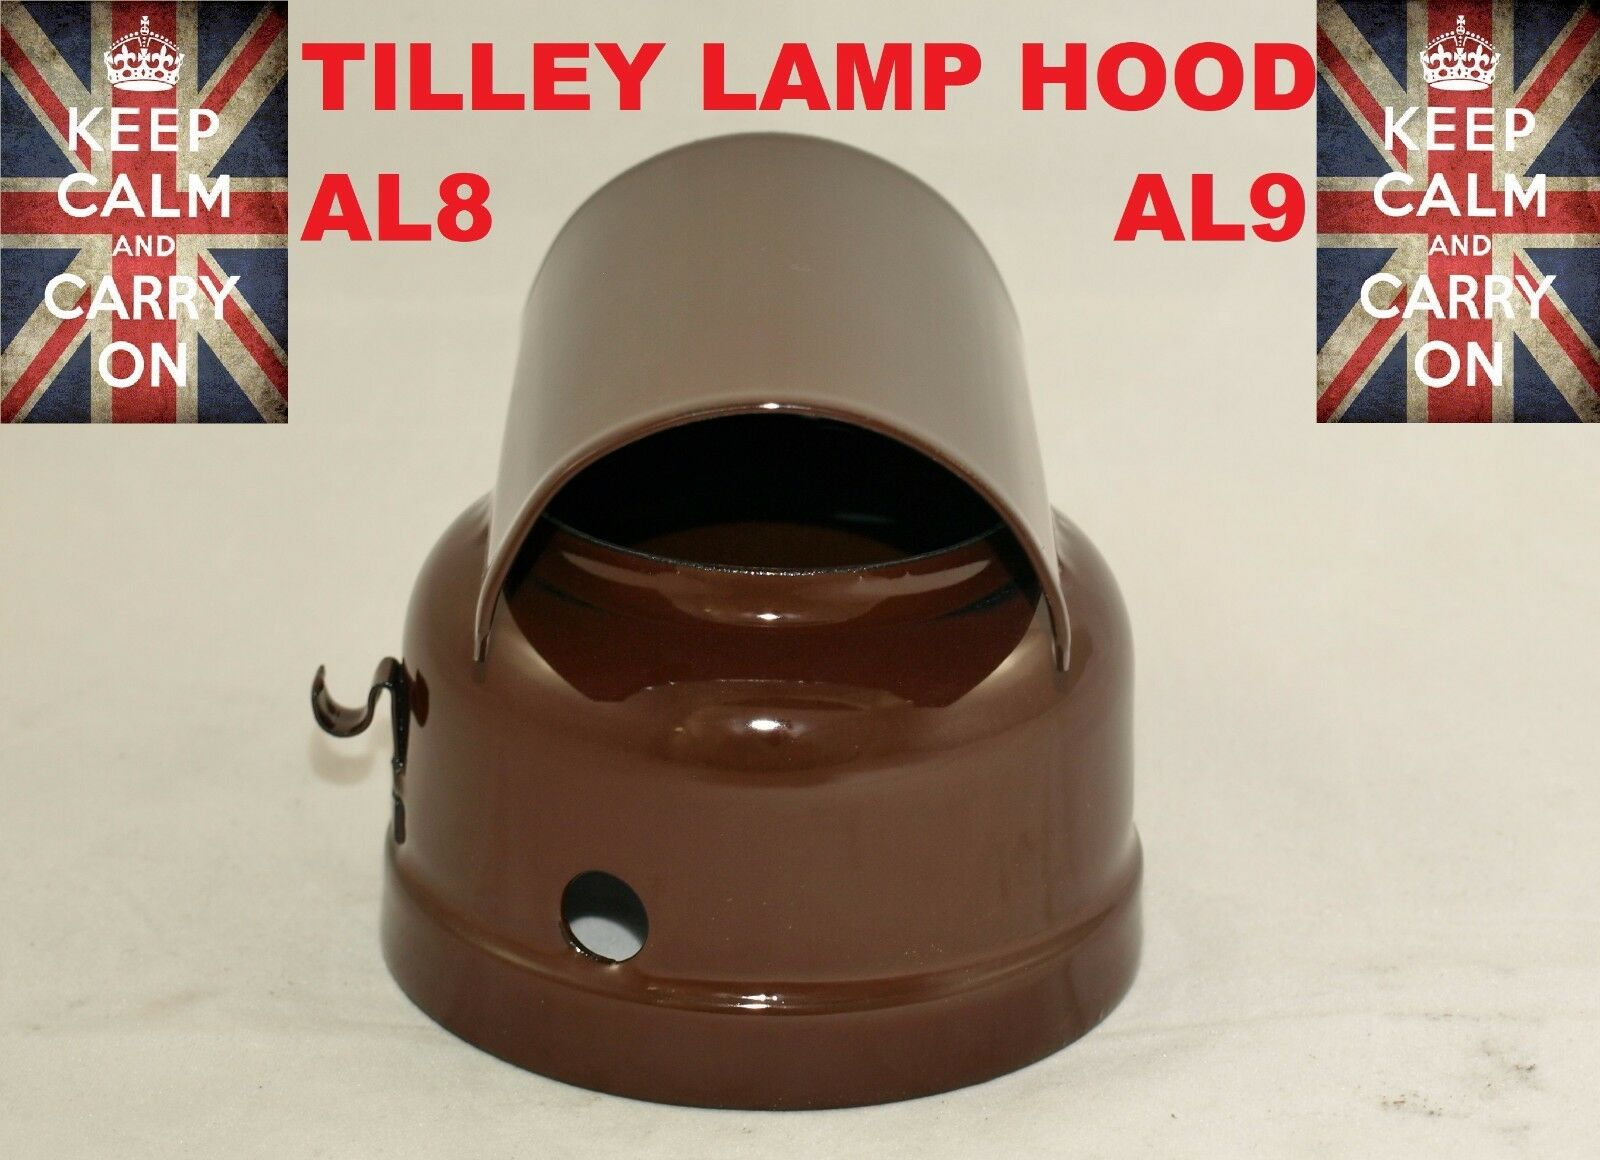 TILLEY LAMP HOOD AL8   AL8 VITREOUS ENAMELLED KEpinkNE LAMP PARAFFIN LAMP